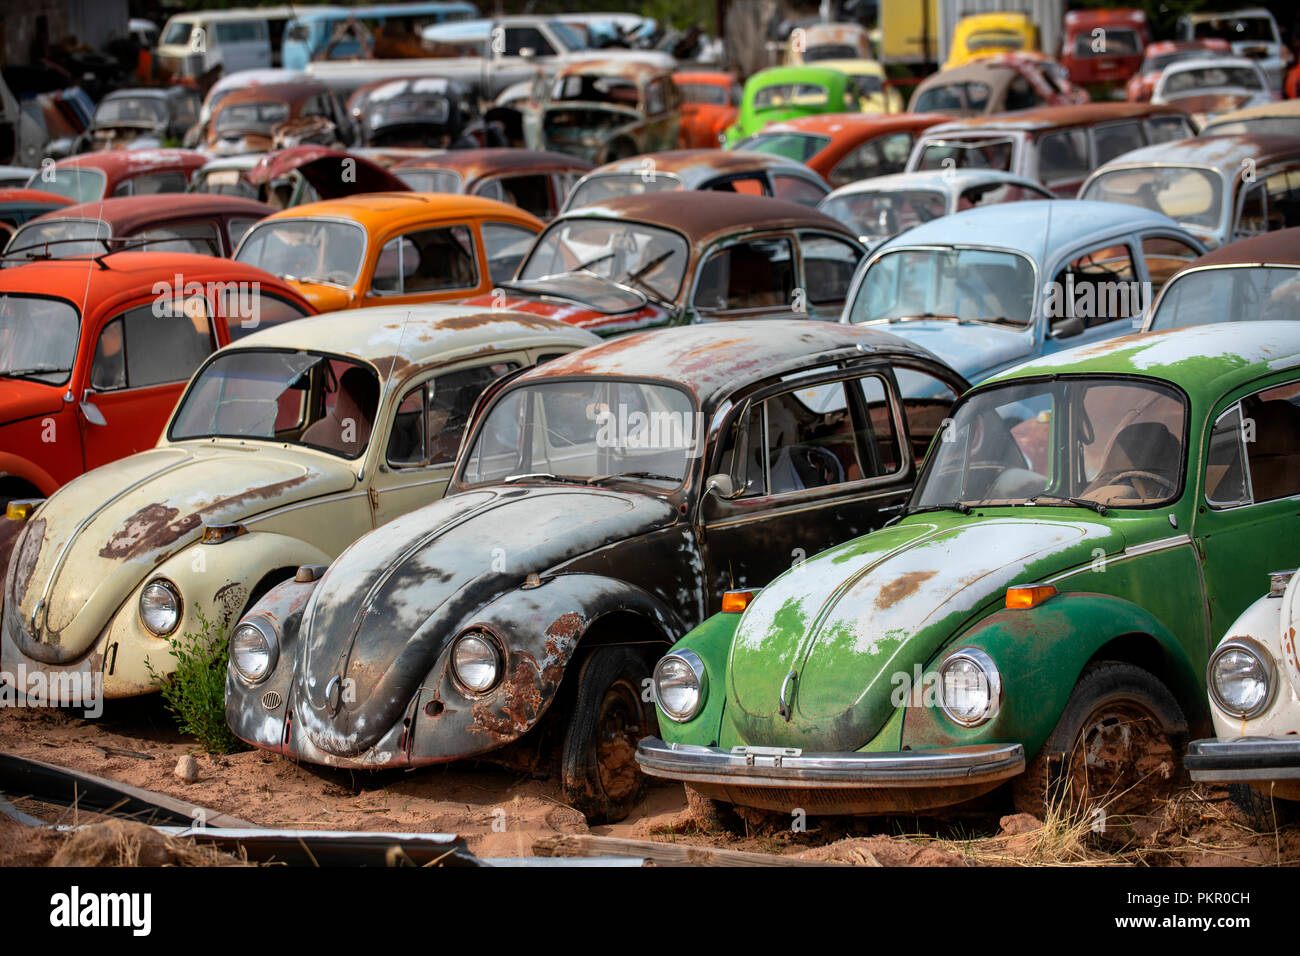 Abandoned Beetle Stock Photos & Abandoned Beetle Stock Images - Alamy